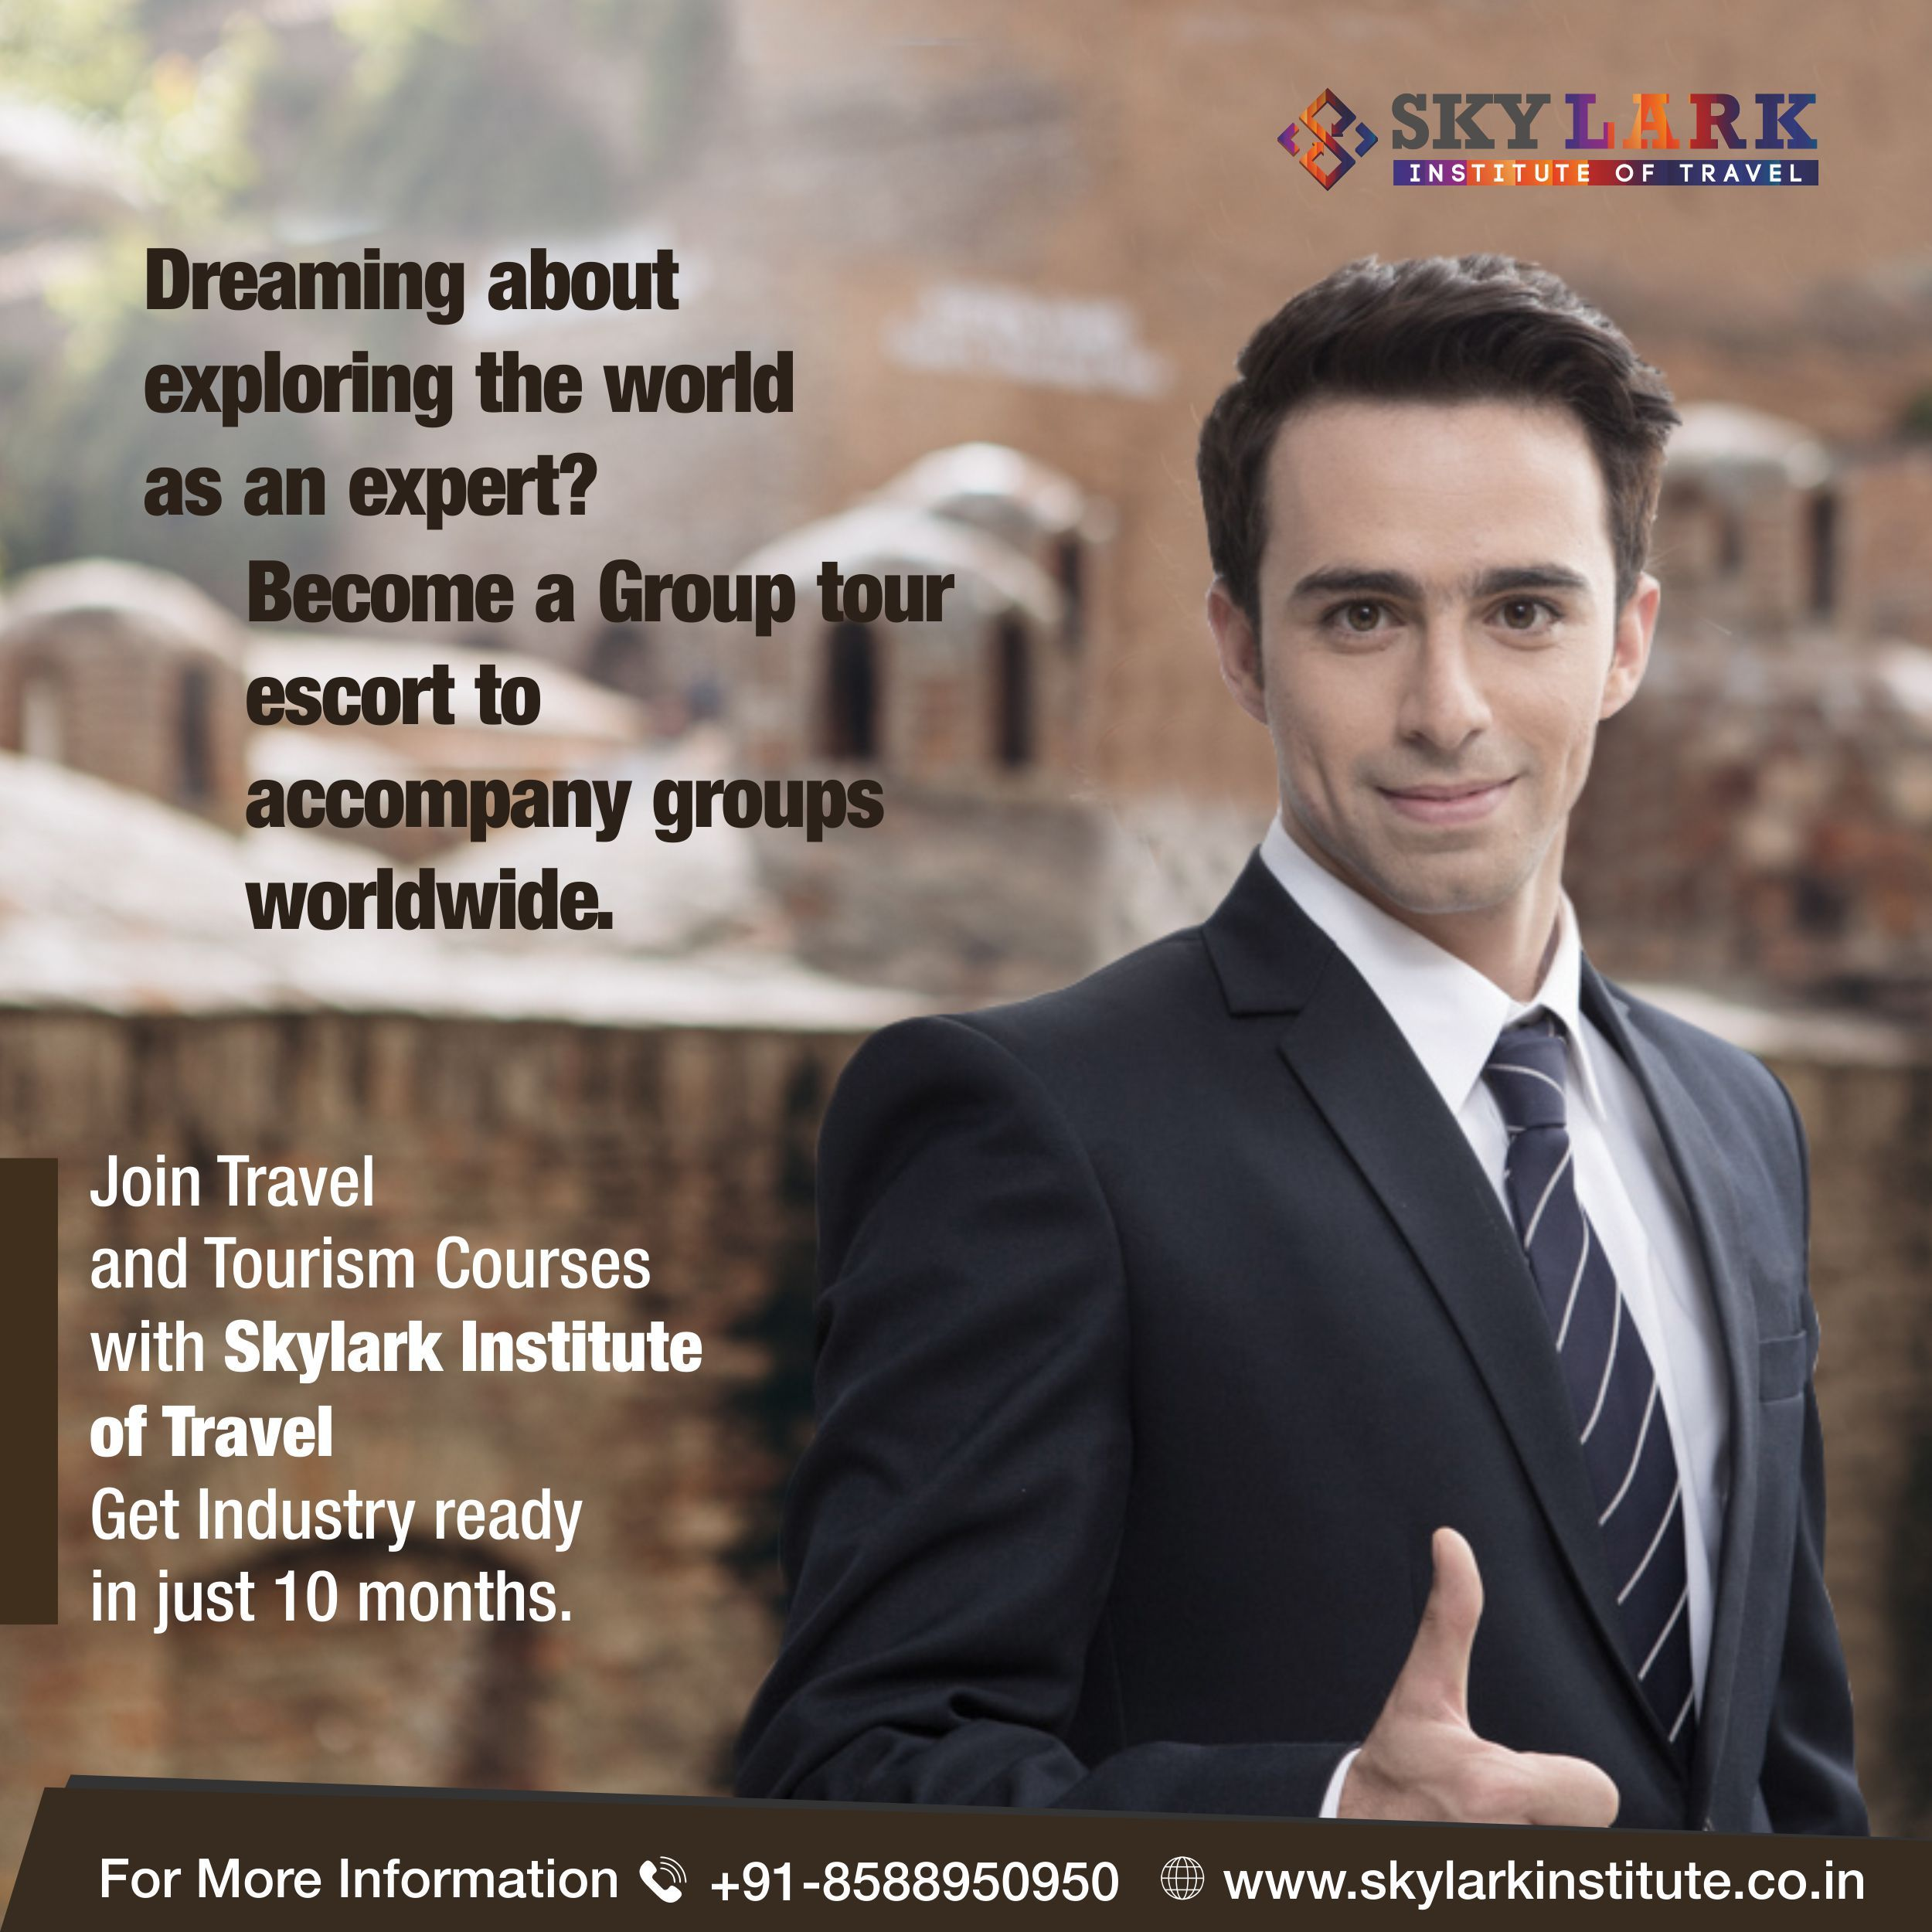 Dreaming About Exploring The World As An Expert In 2020 Travel And Tourism Tourism Group Tours